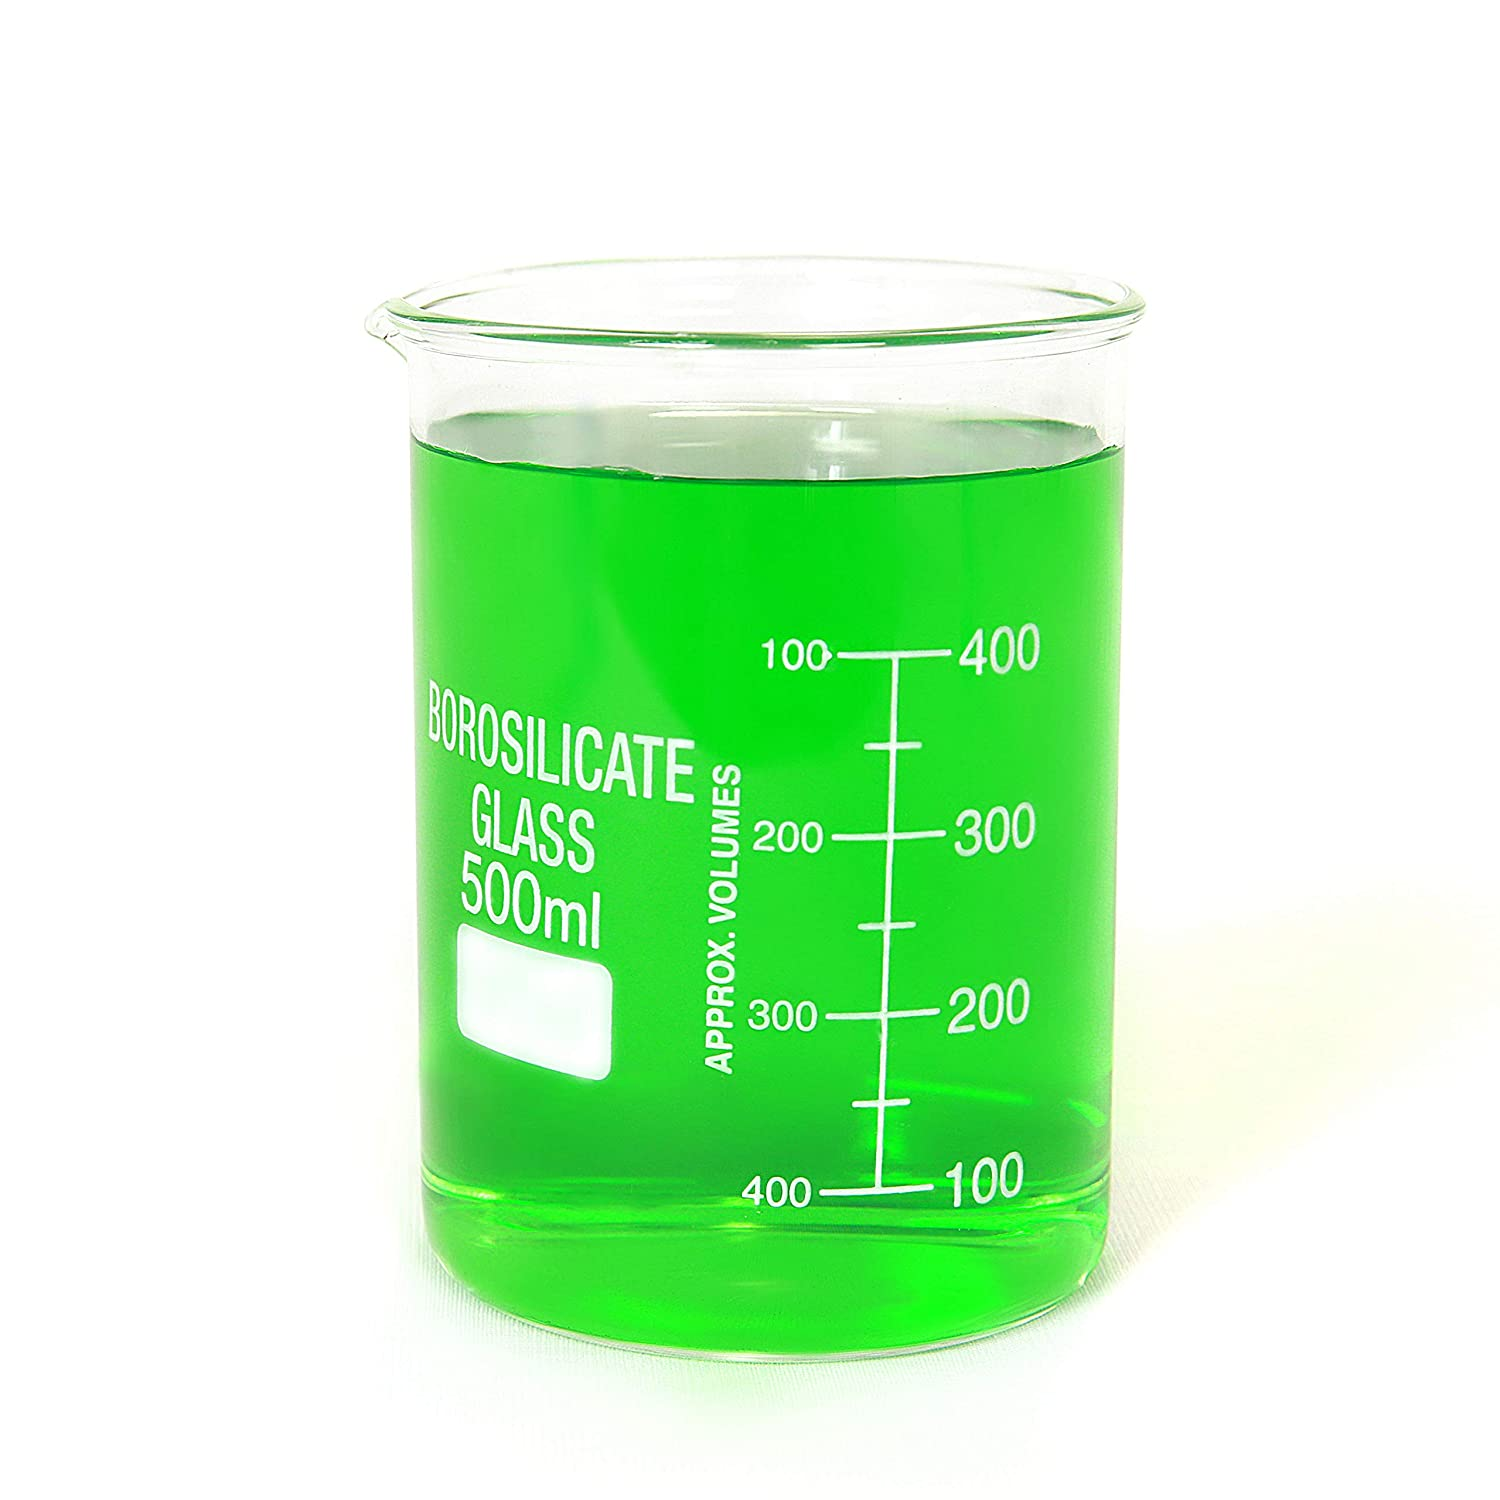 500mL Ajax Scientific Borosilicate Glass Graduated Beaker